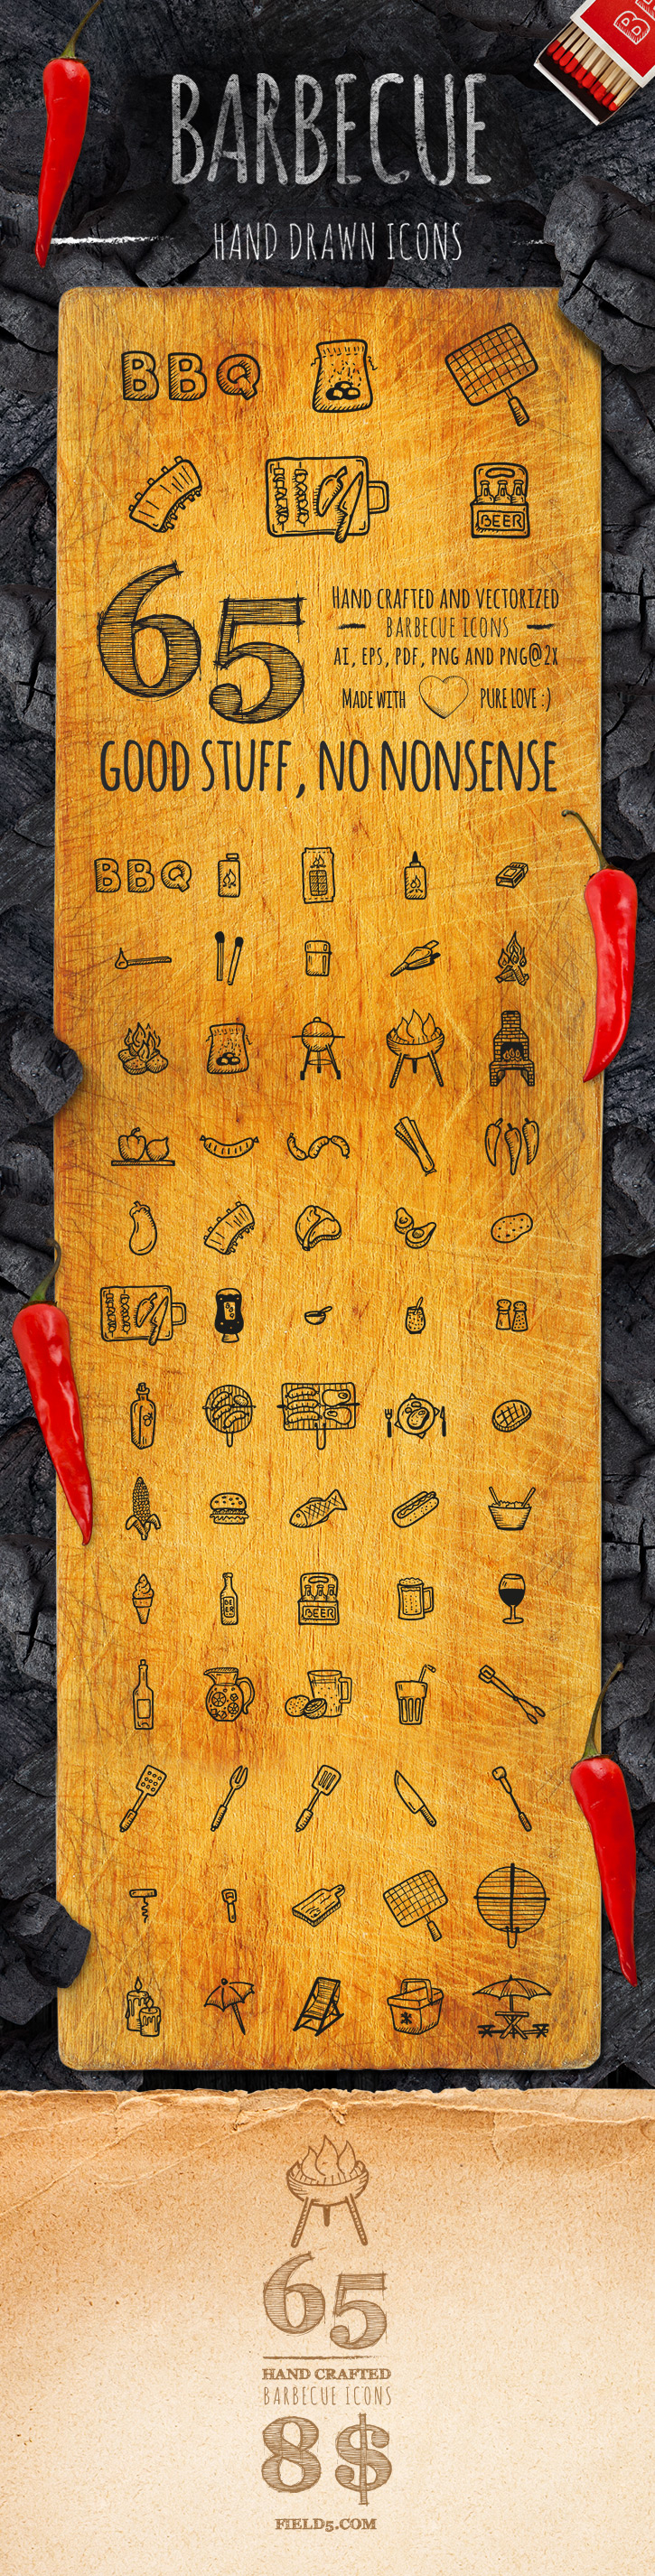 bbq-hand-drawn-icons2-jpg